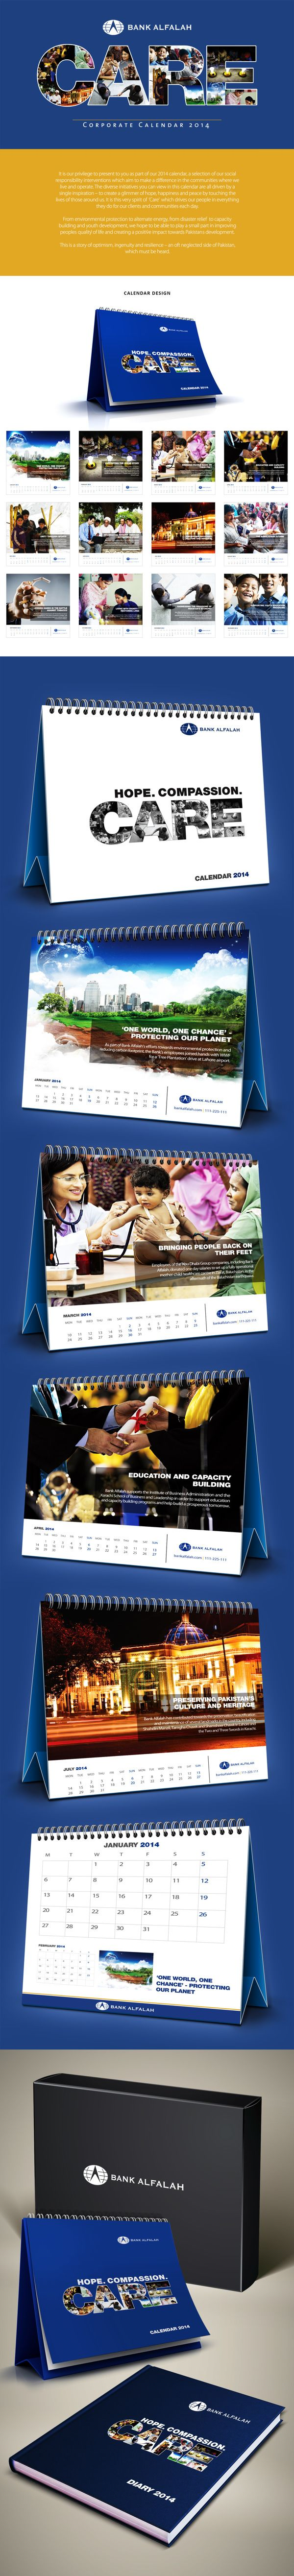 Alfalah Corporate Calendar 2014 by Muhammad Moazzam, via Behance